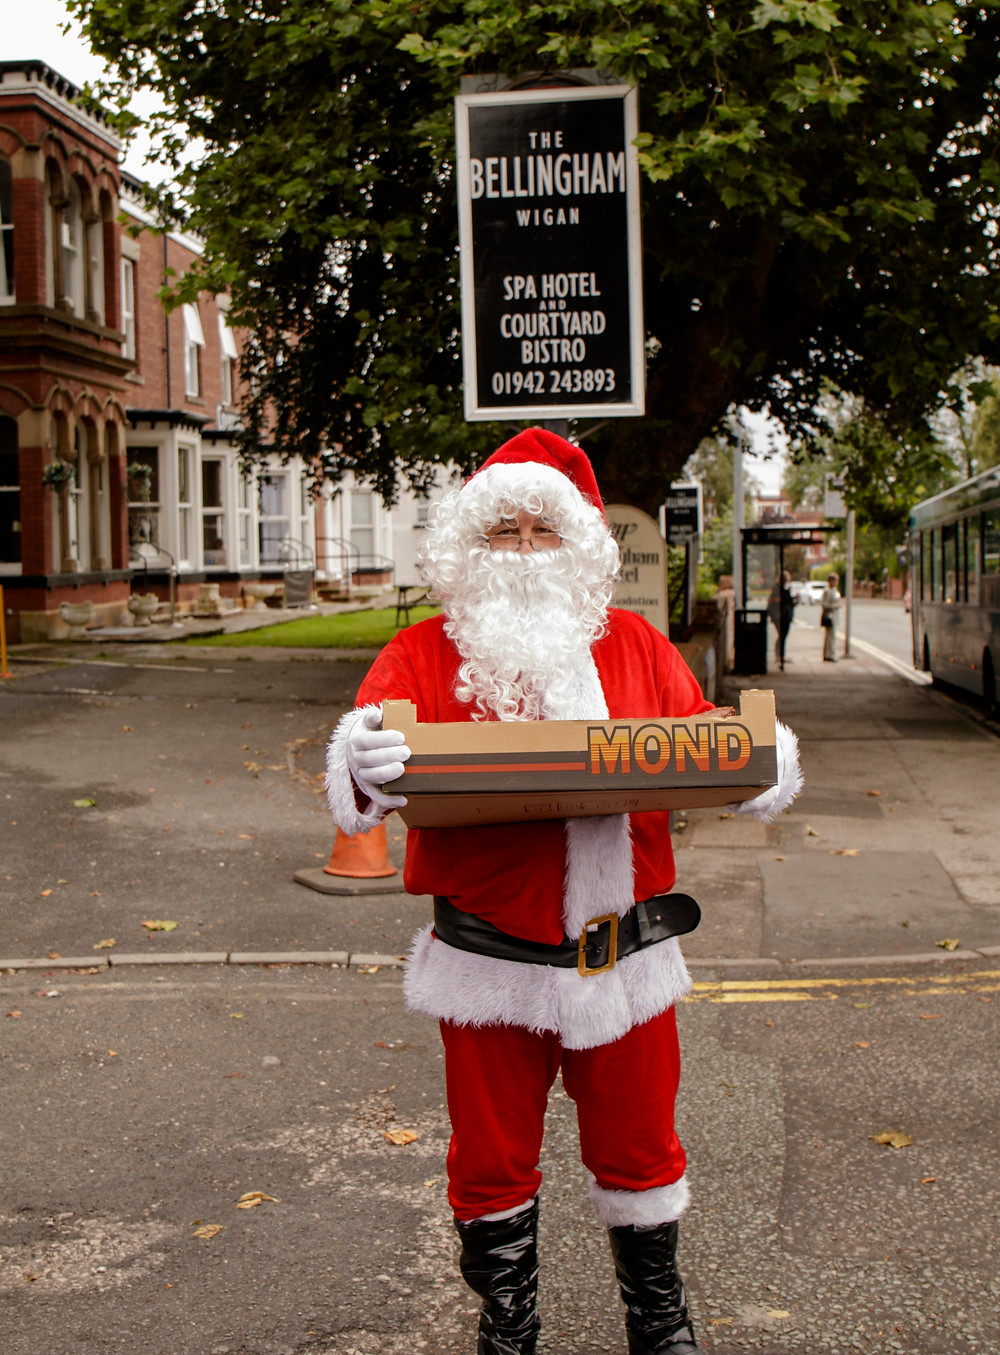 Santa in July at The Bellingham Hotel - Sunday 24th July 2016